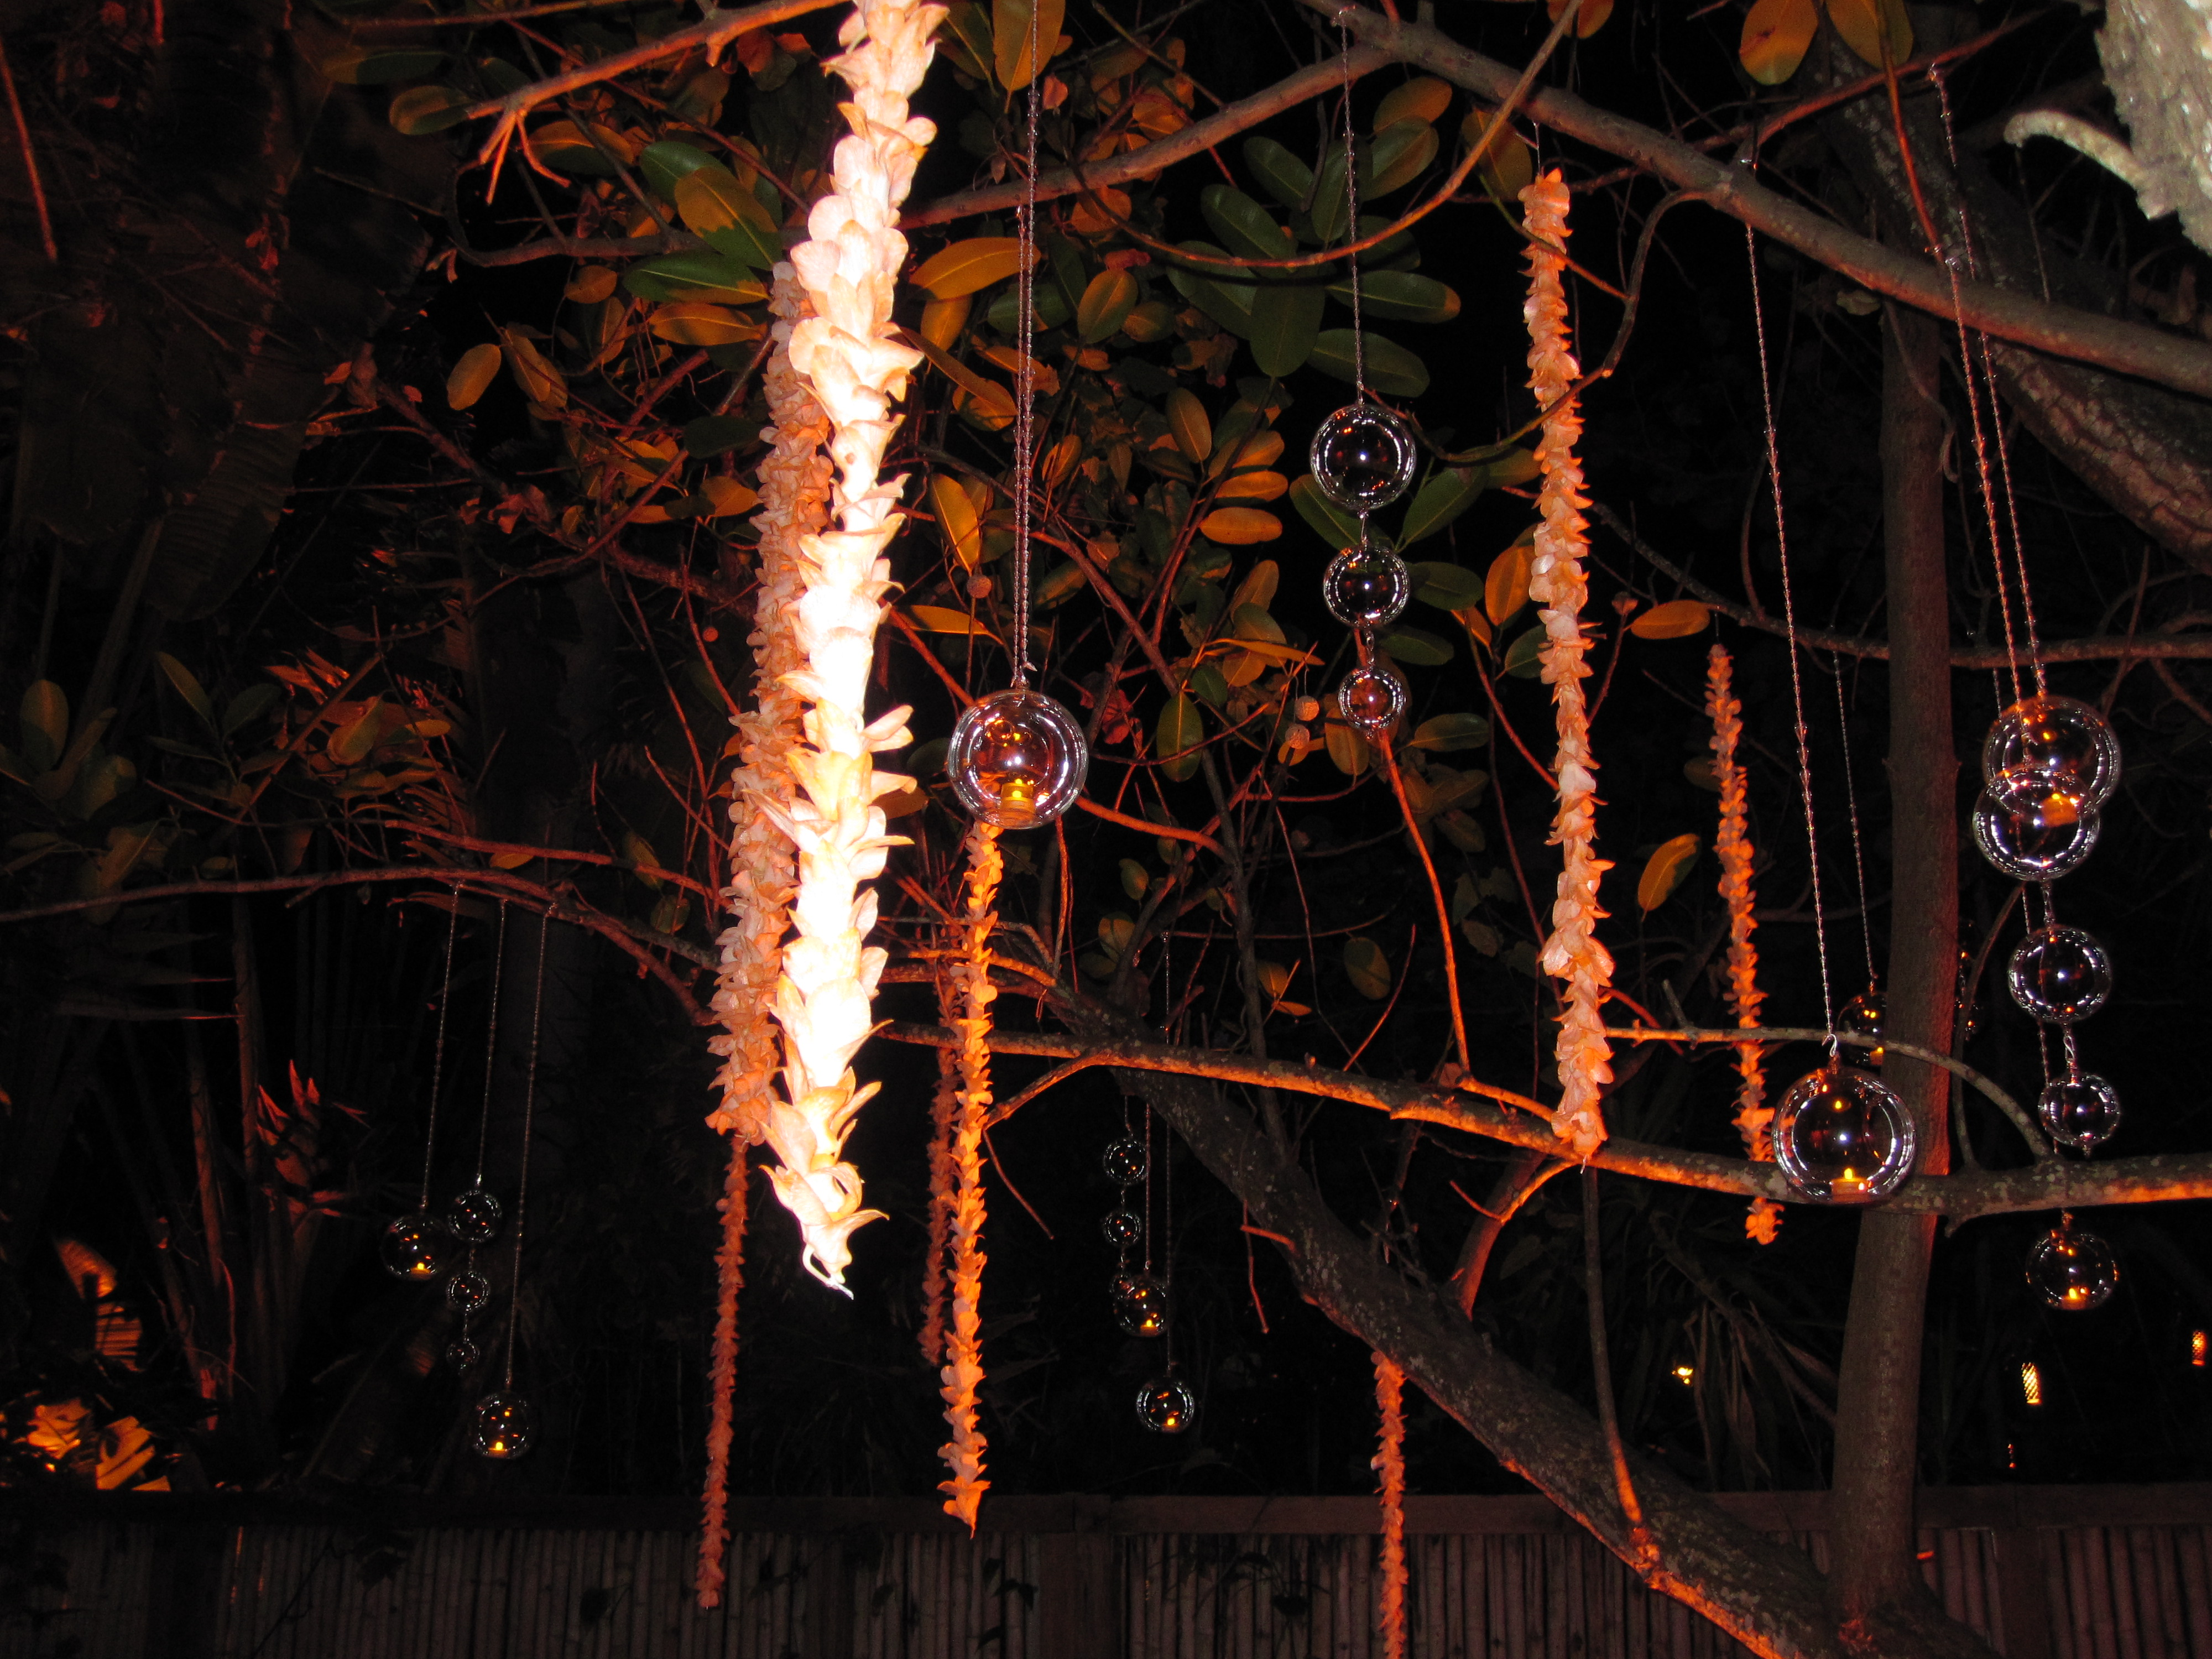 I loved the decorations: Hanging leis and glowing glass globes with candles. I'm definitely going to steal these ideas for a future party!